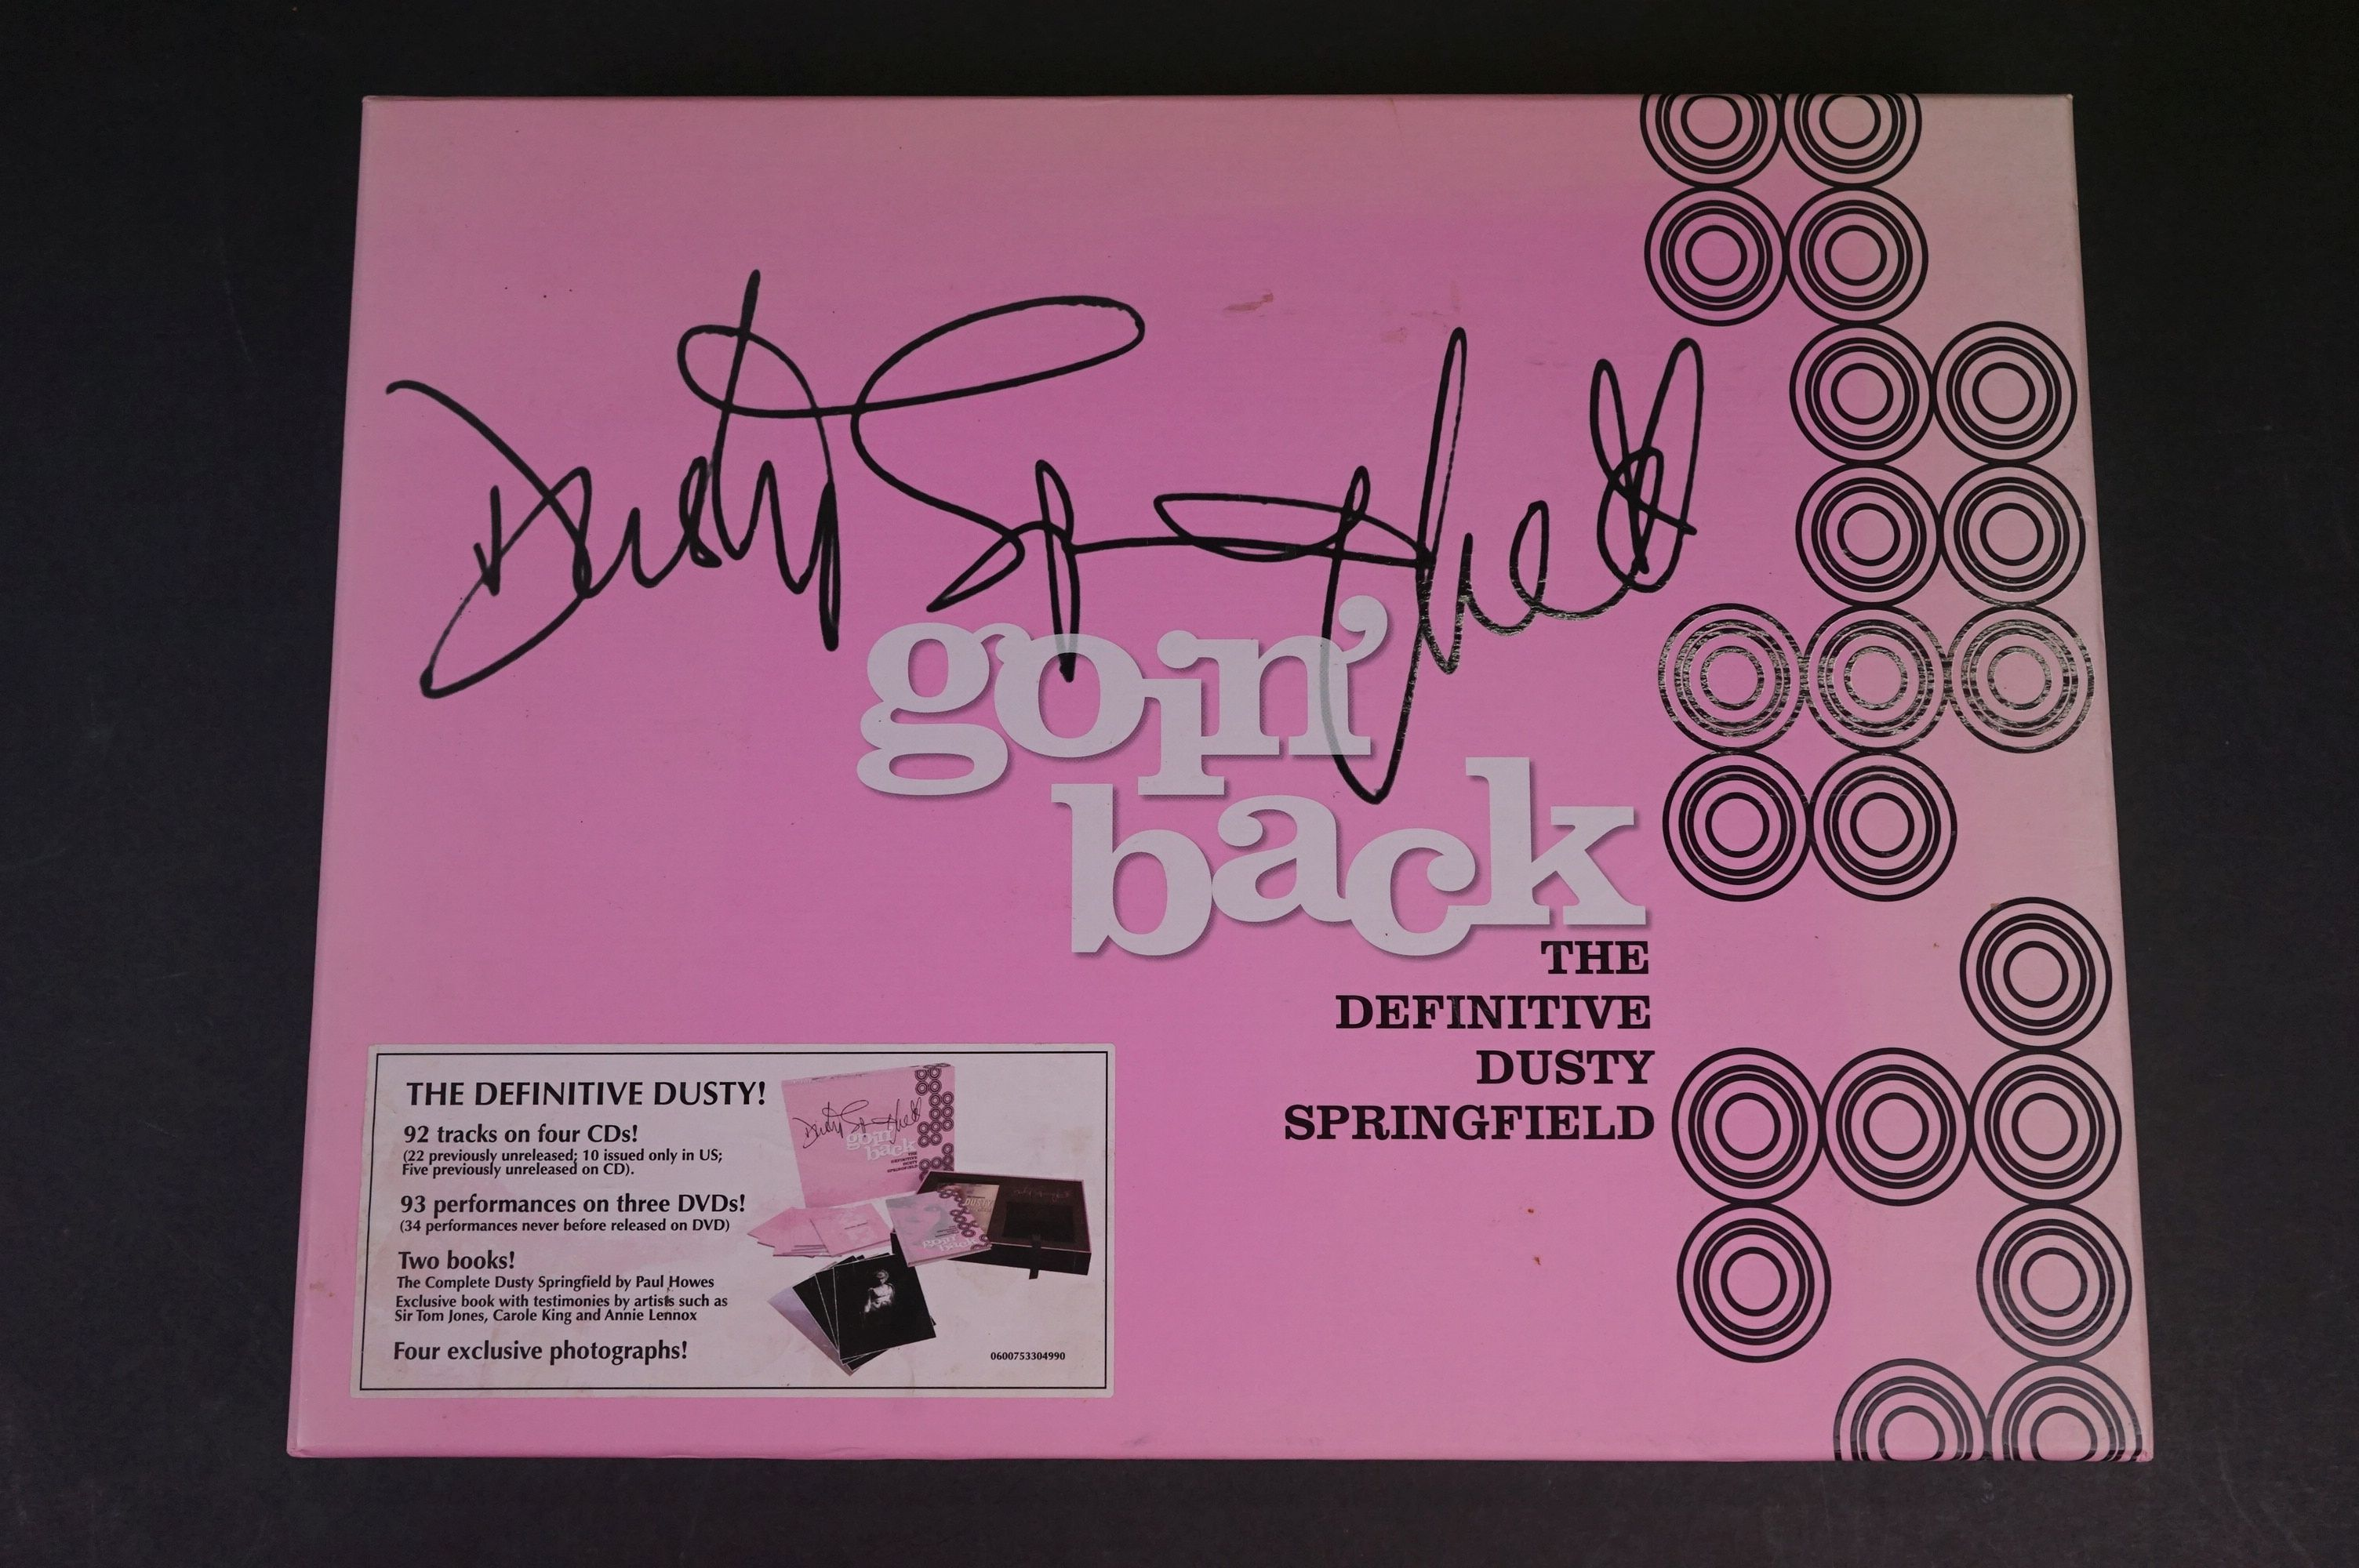 CD / DVD - Dusty Springfield Goin' Back The Definitive Box Set, ltd edn number 00128, ex with some